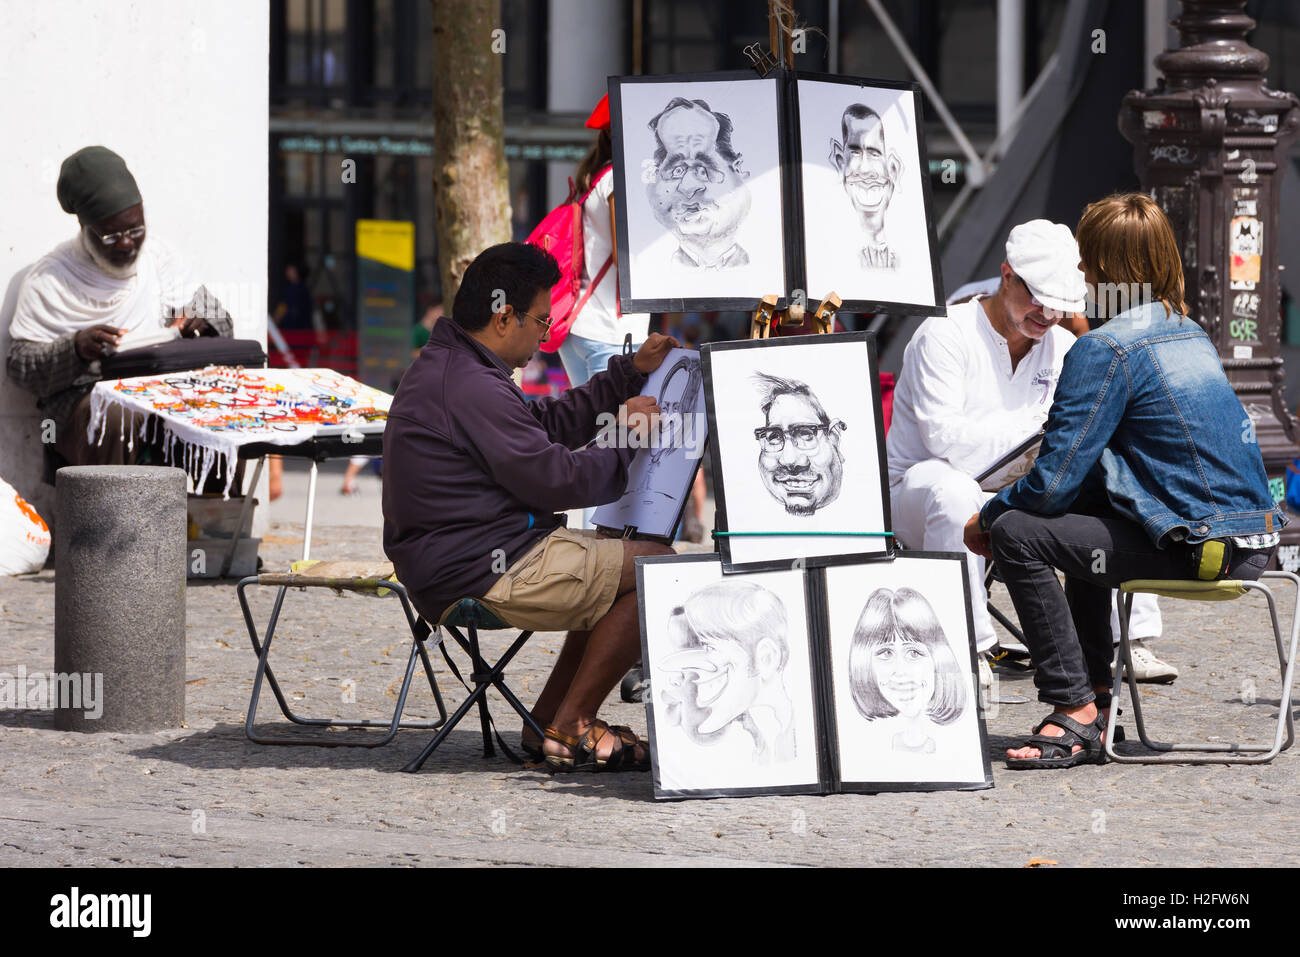 Street artists outside The Pompidou Centre in the Beauborg area near Les Halles, Paris, draw portraits and caricatures - Stock Image